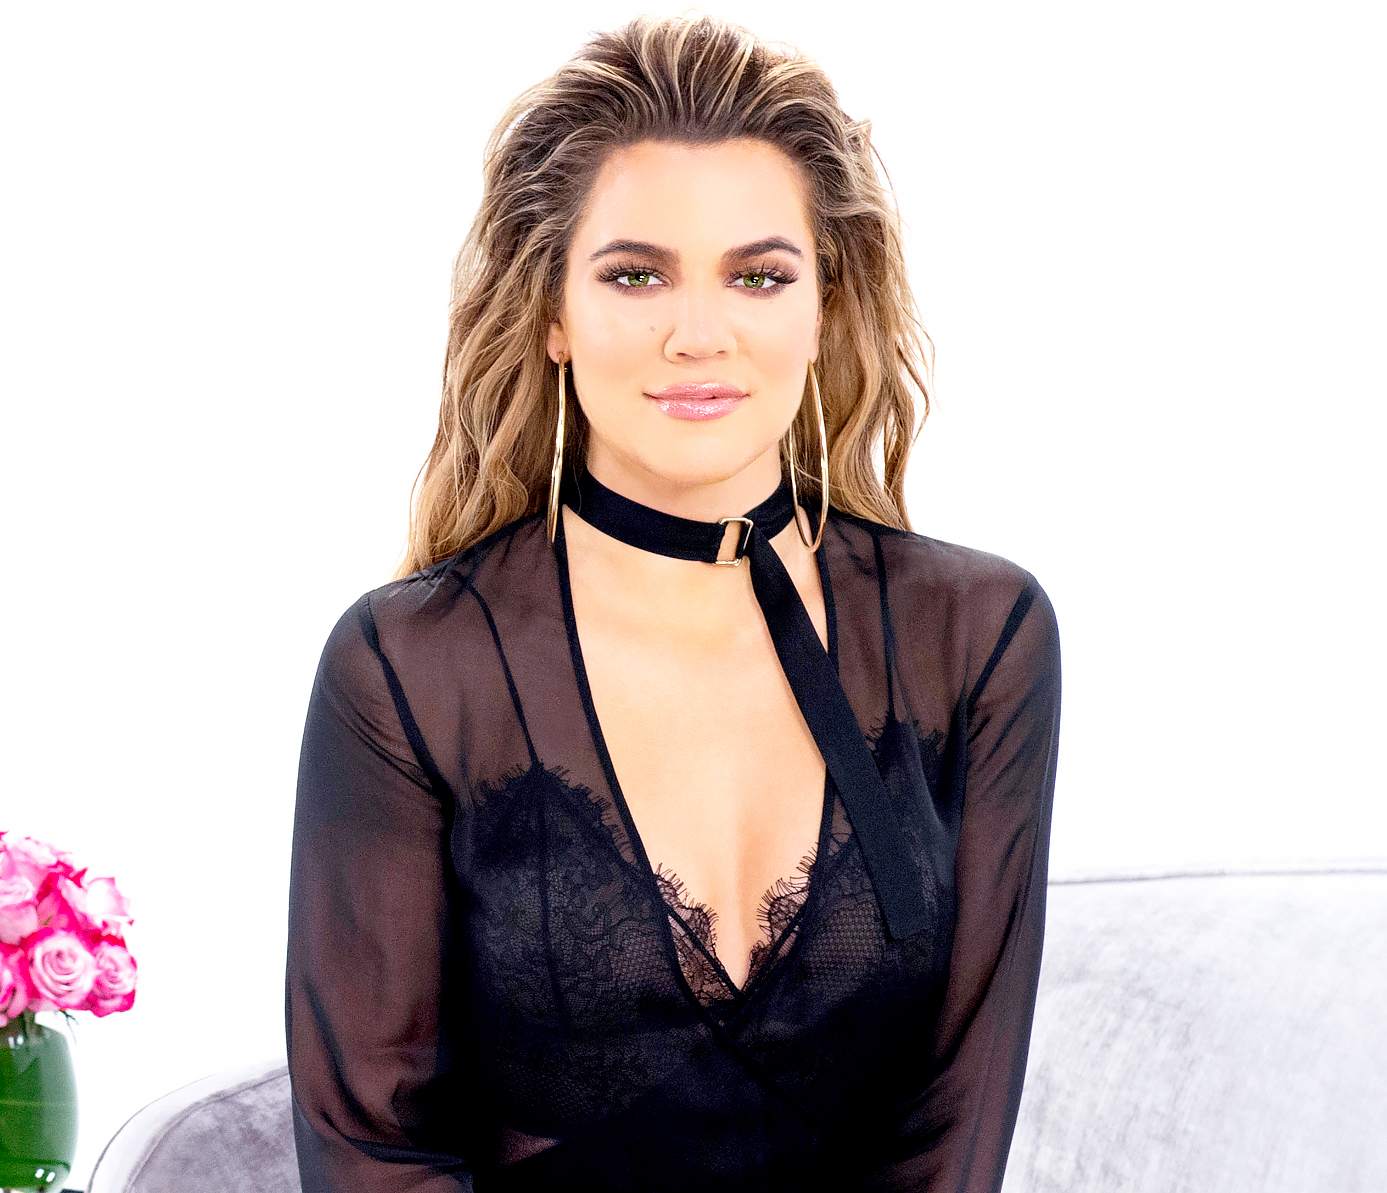 Pregnant Khloe Kardashian shares wedding plans